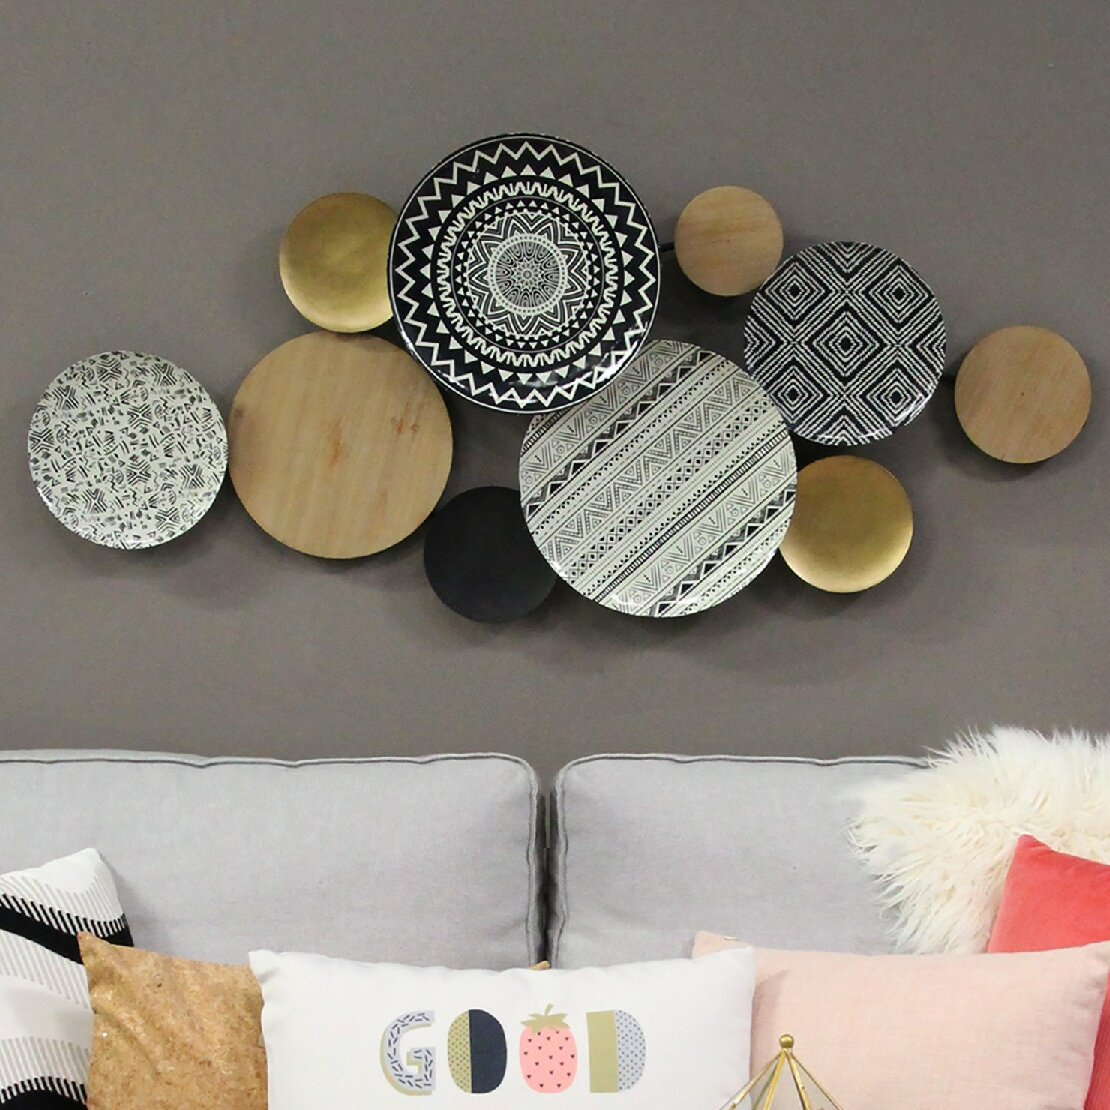 Tuscan Wall Decor Plates | Wayfair For Scattered Metal Italian Plates Wall Decor (View 24 of 30)